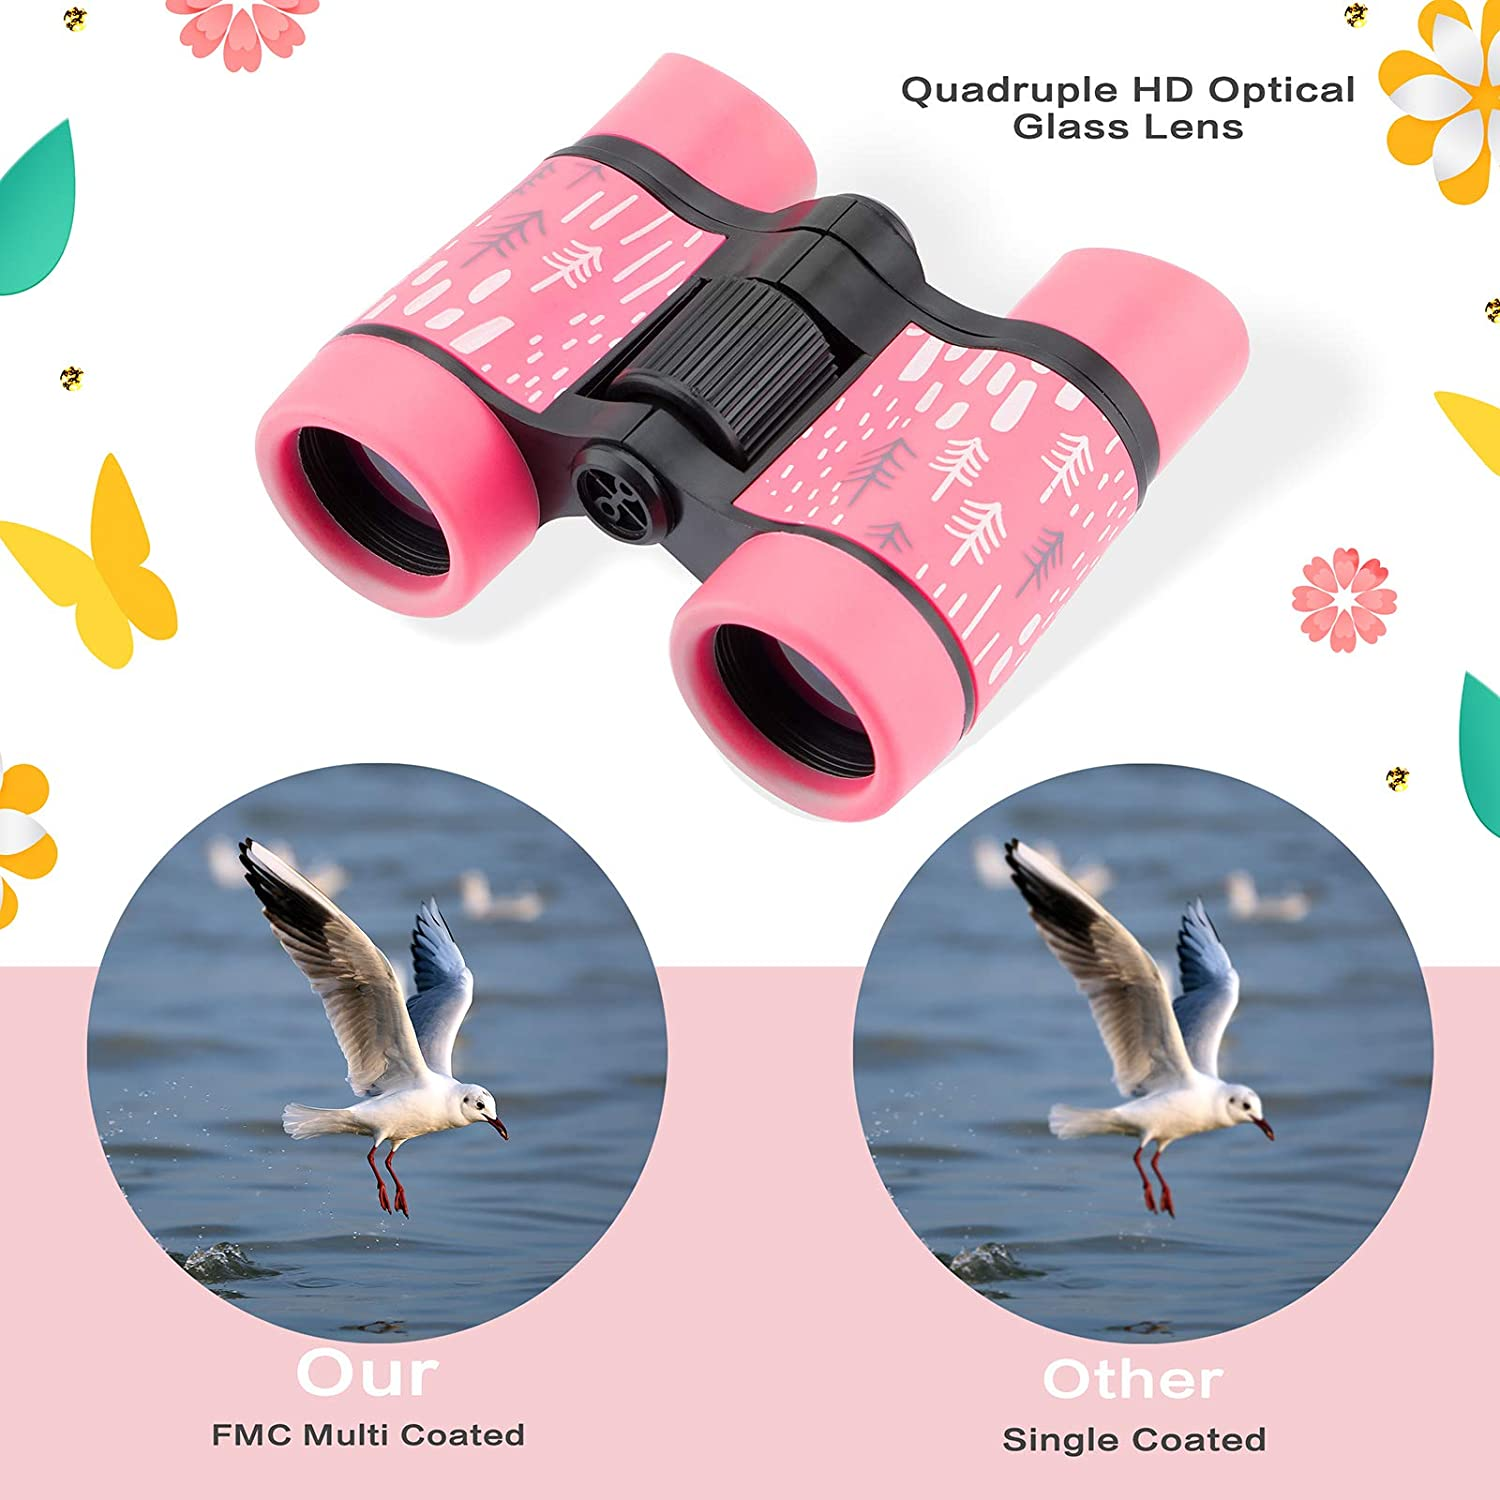 Blue Camping Outside Play Binoculars for Kids Bird Watching Outdoor Games Compact Shockproof Waterproof Toys 3-12 Years Boys Girls Best Gifts 5X30 High Resolution for Hiking Hunting